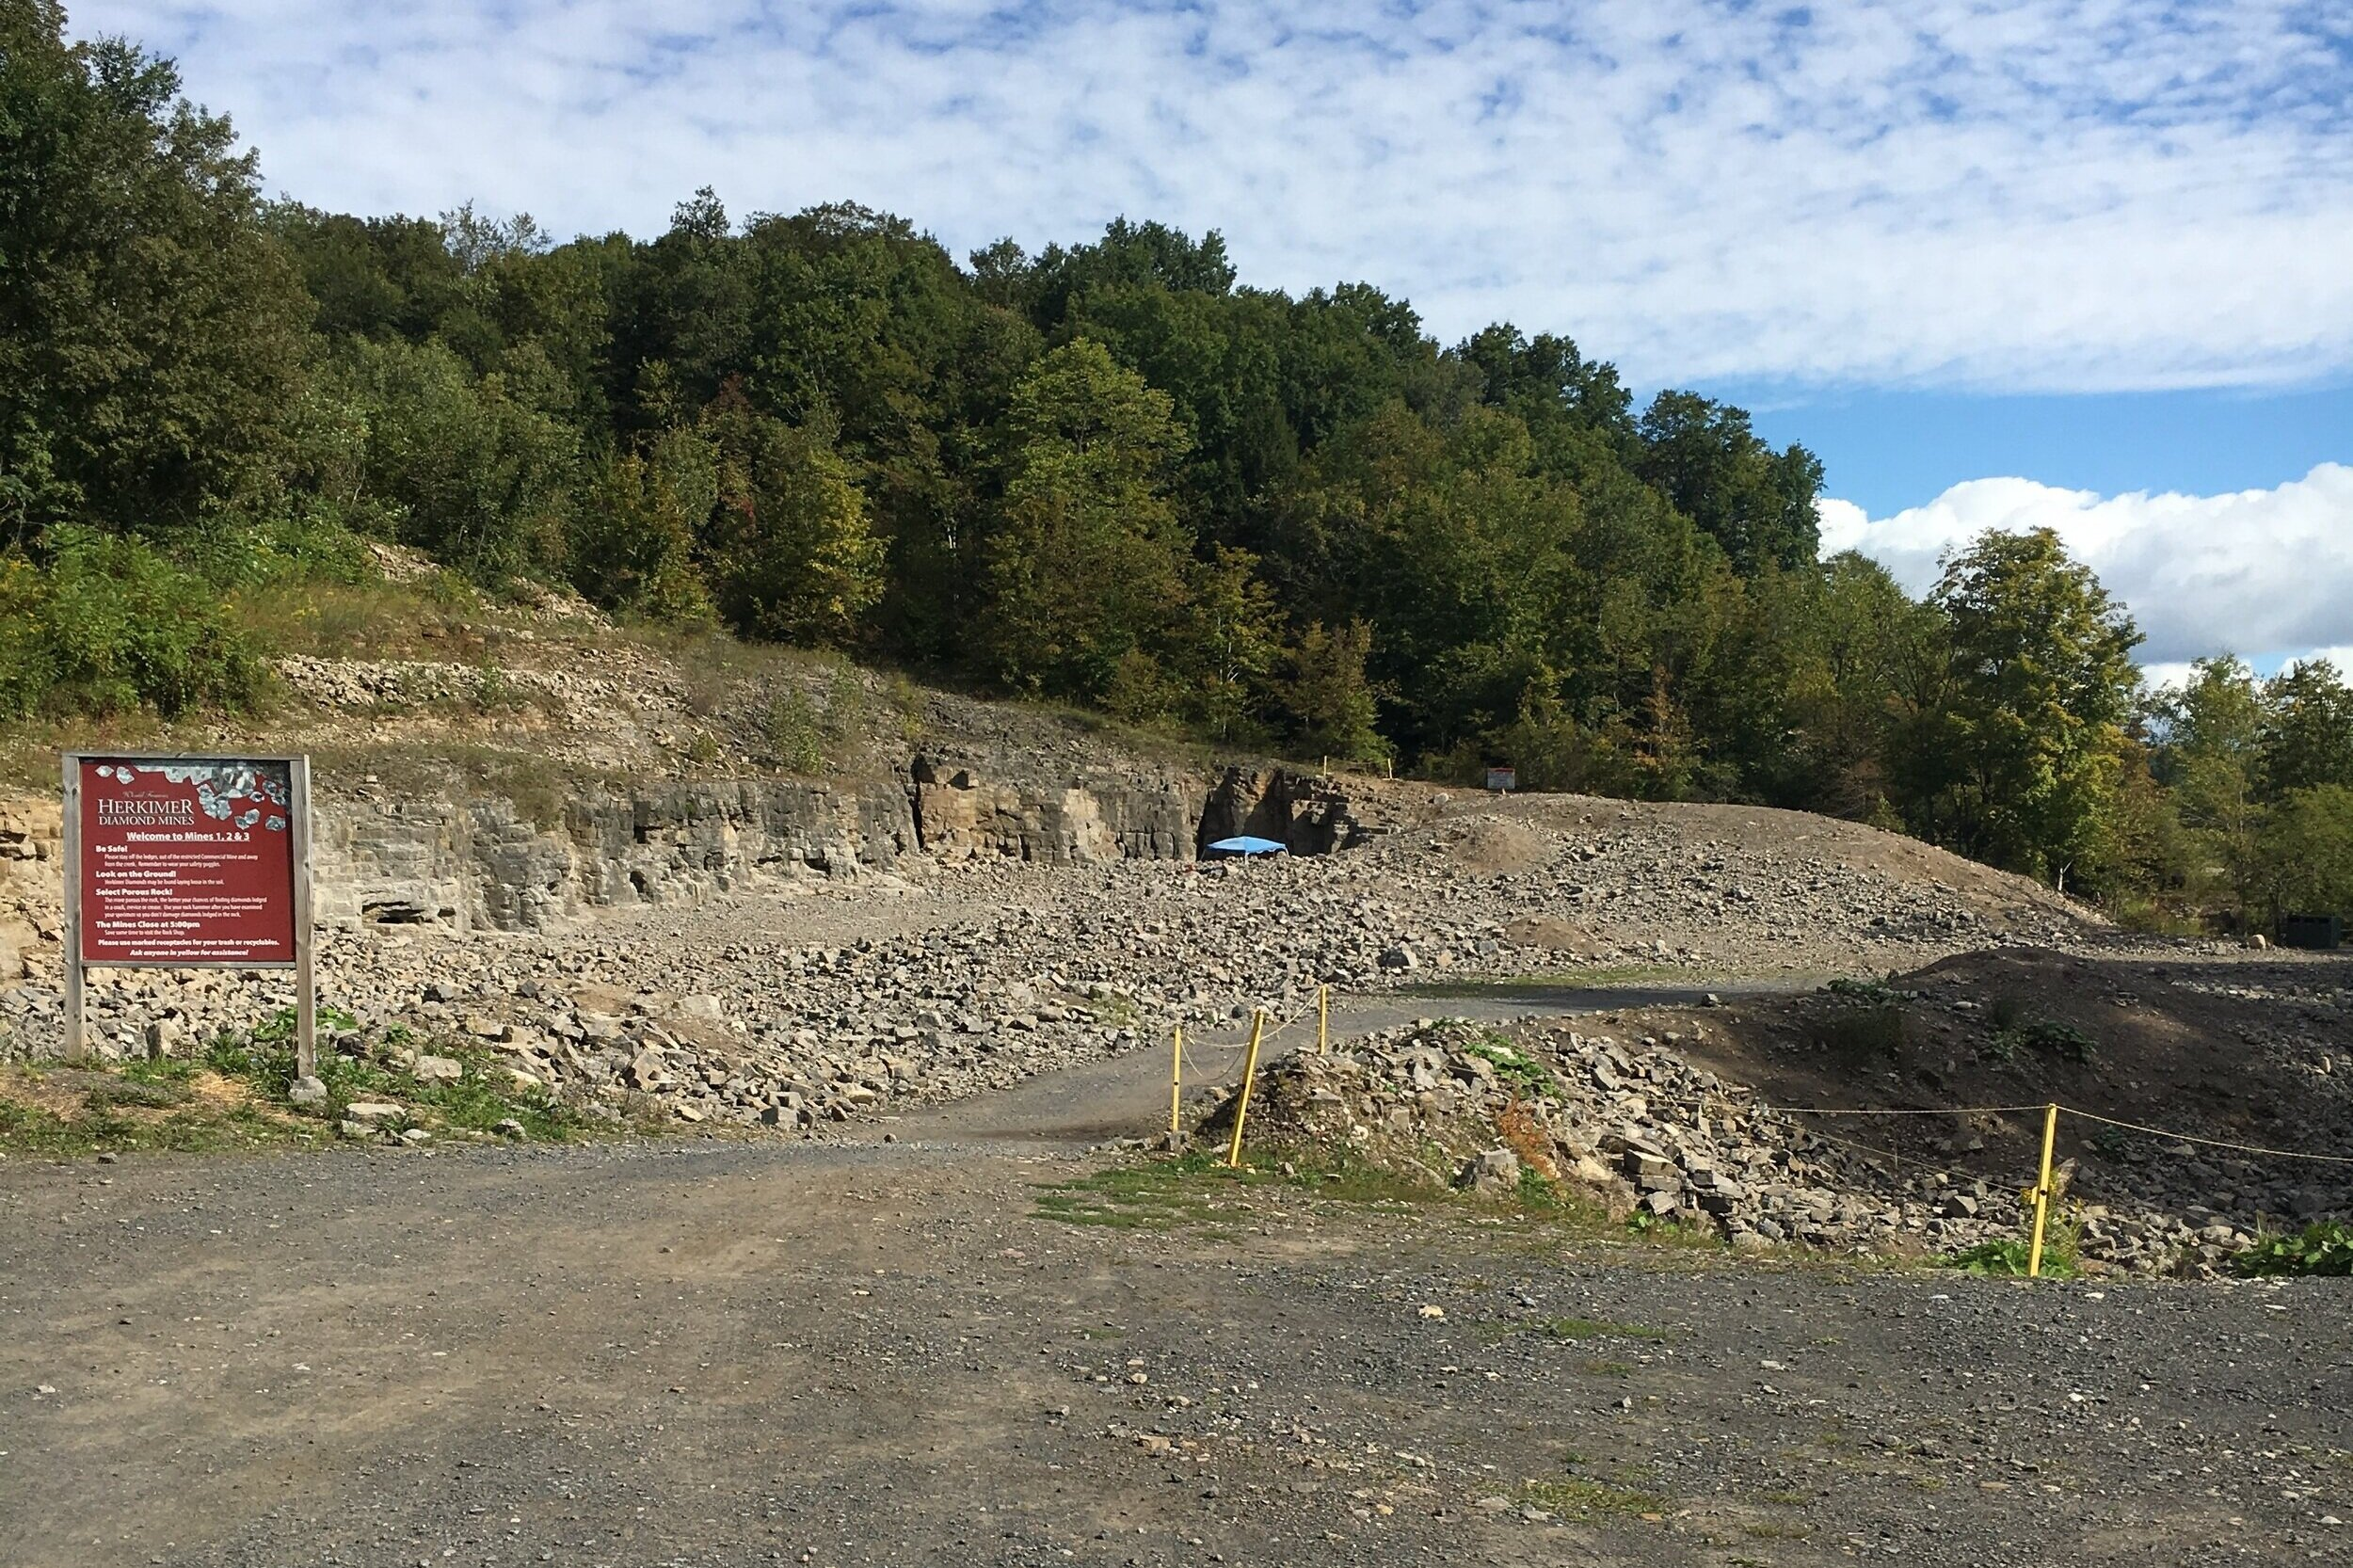 Entrance to the mining area at the World-Famous Herkimer Diamond Mines in Herkimer County, New York. Photo credit: Michelle Pajak-Reynolds